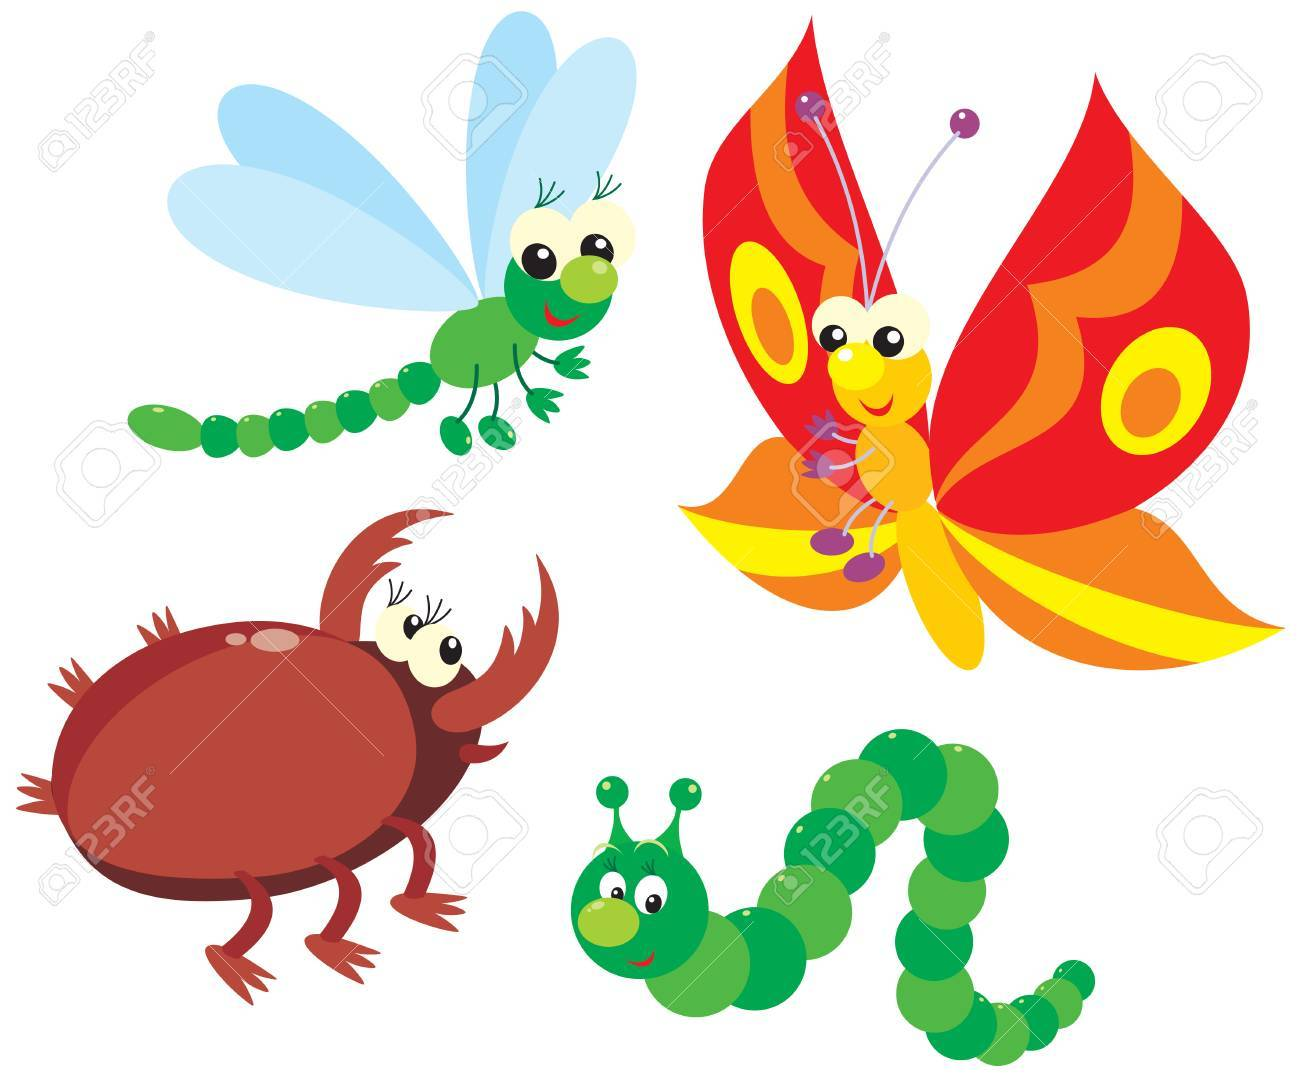 Caterpillar, butterfly, dragonfly and beetle.